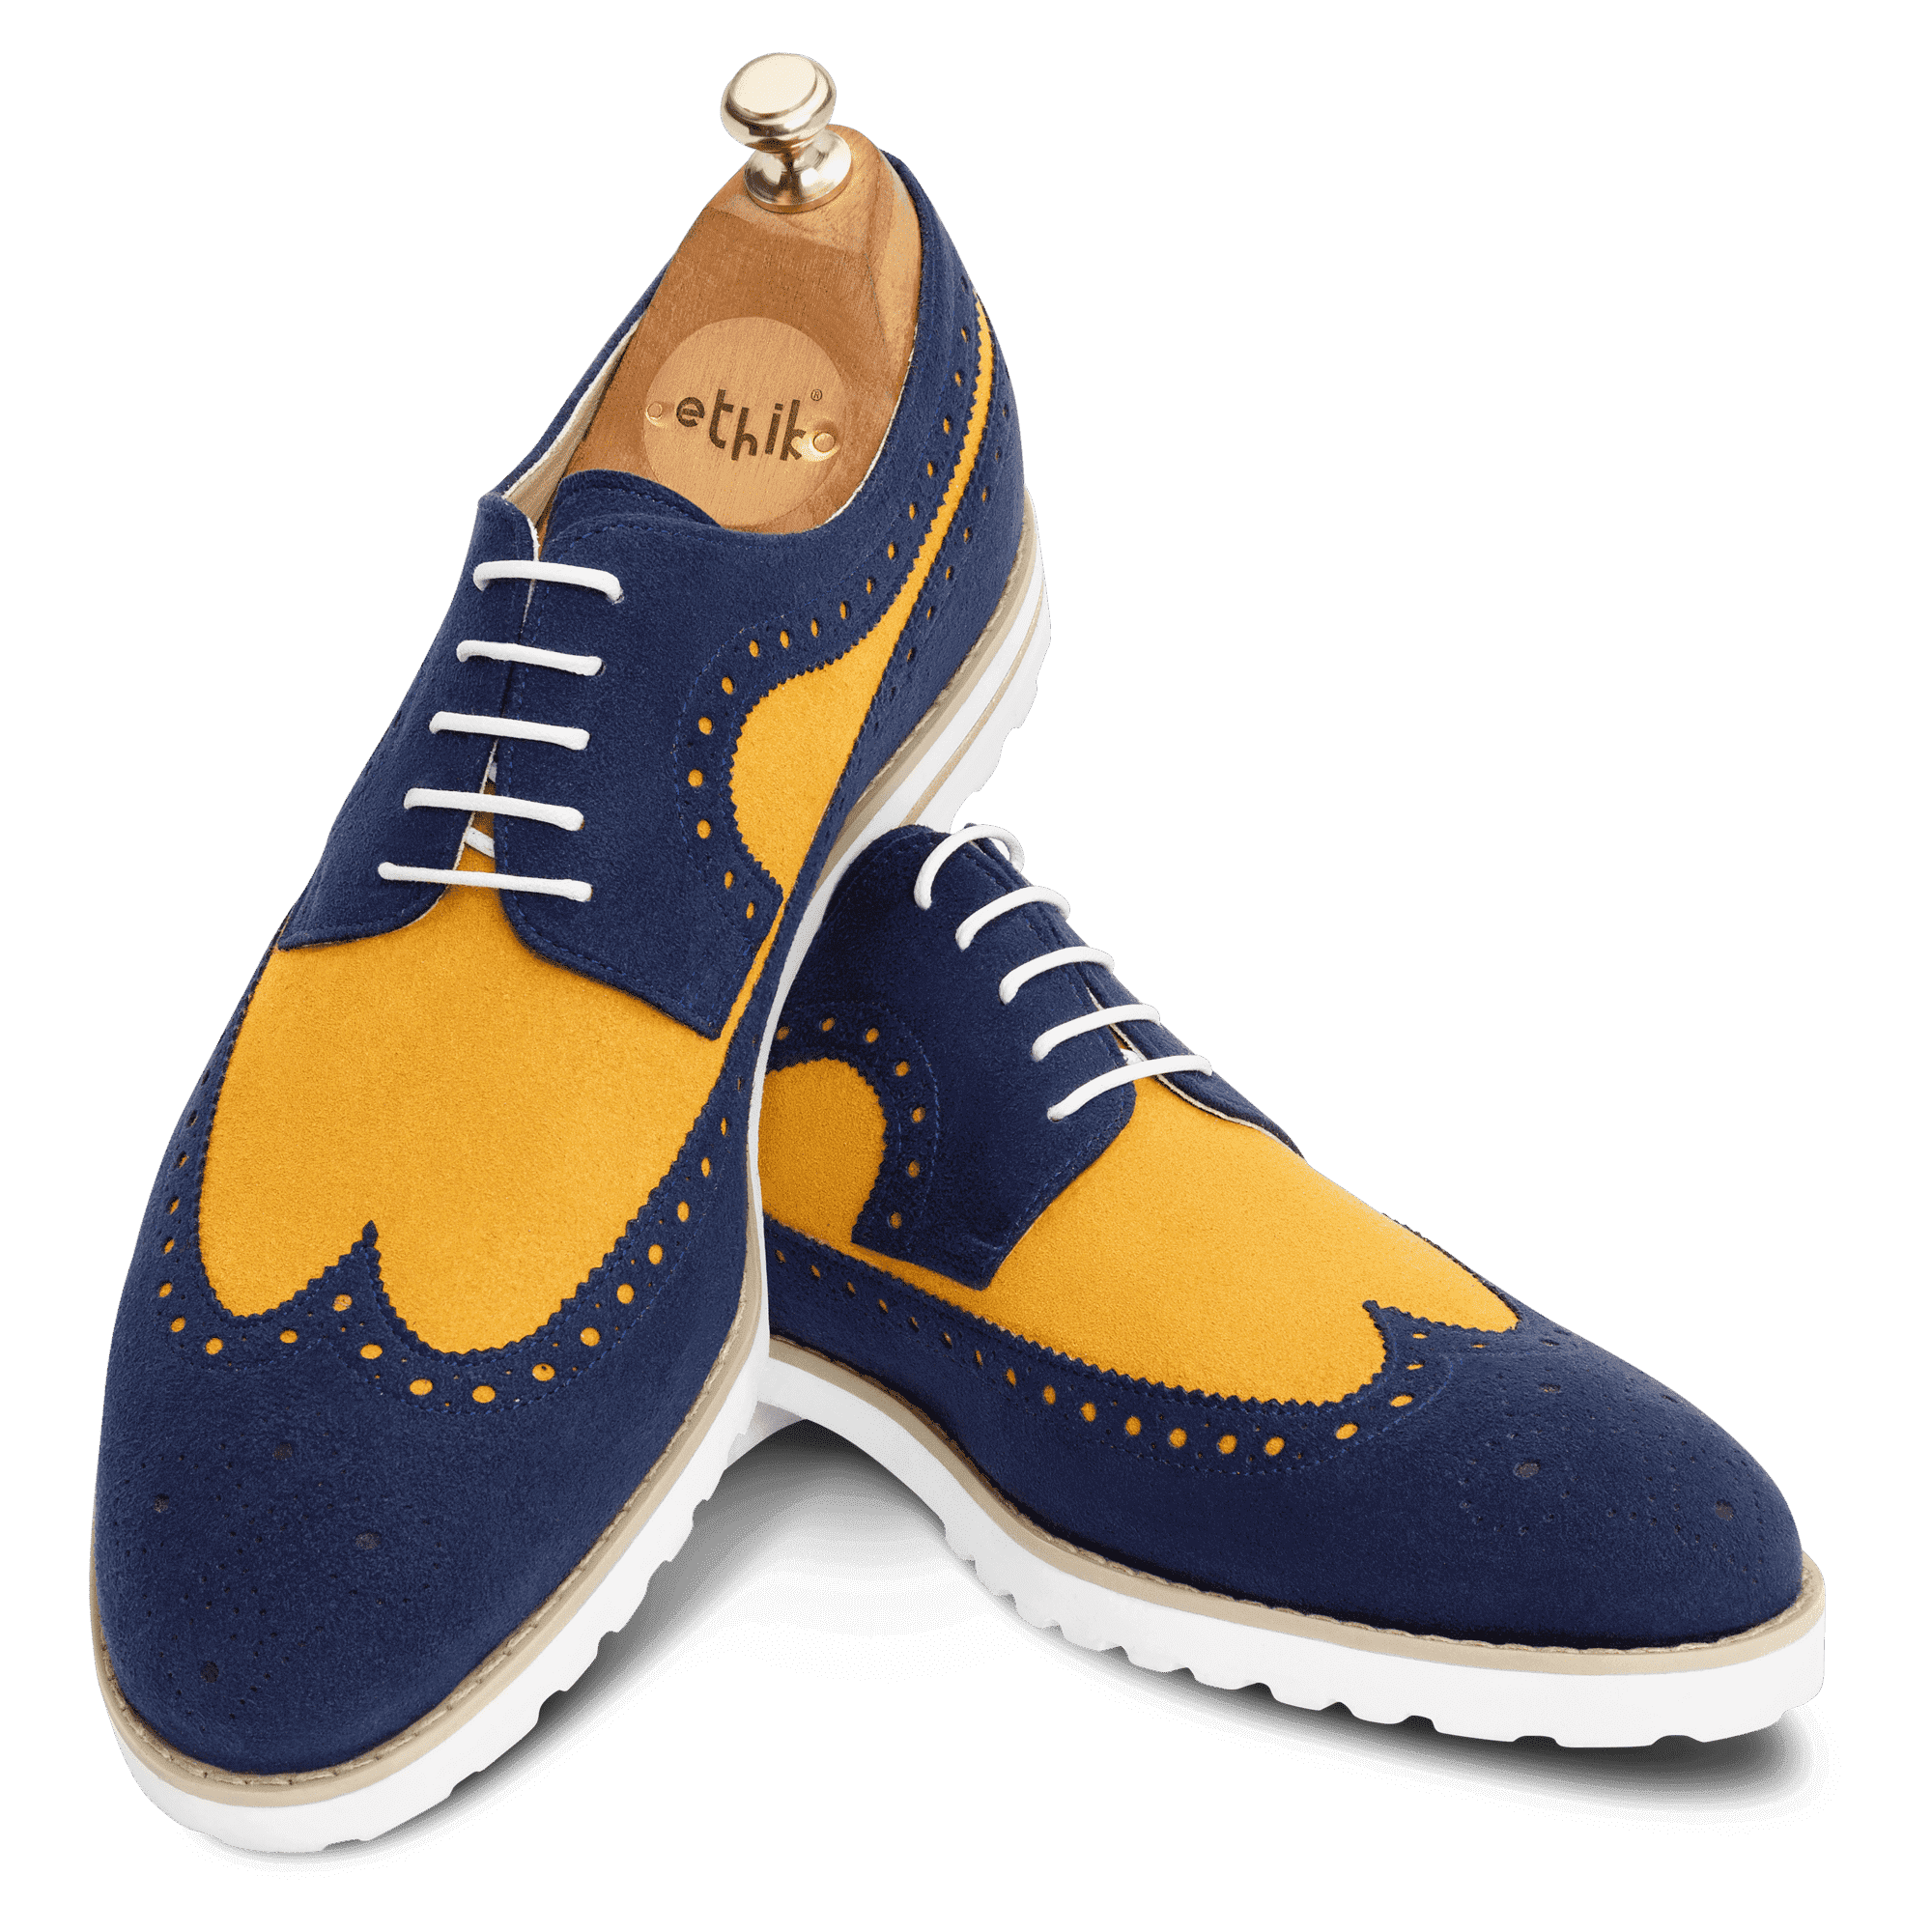 The Recreation - Navy Blue and Light Tan